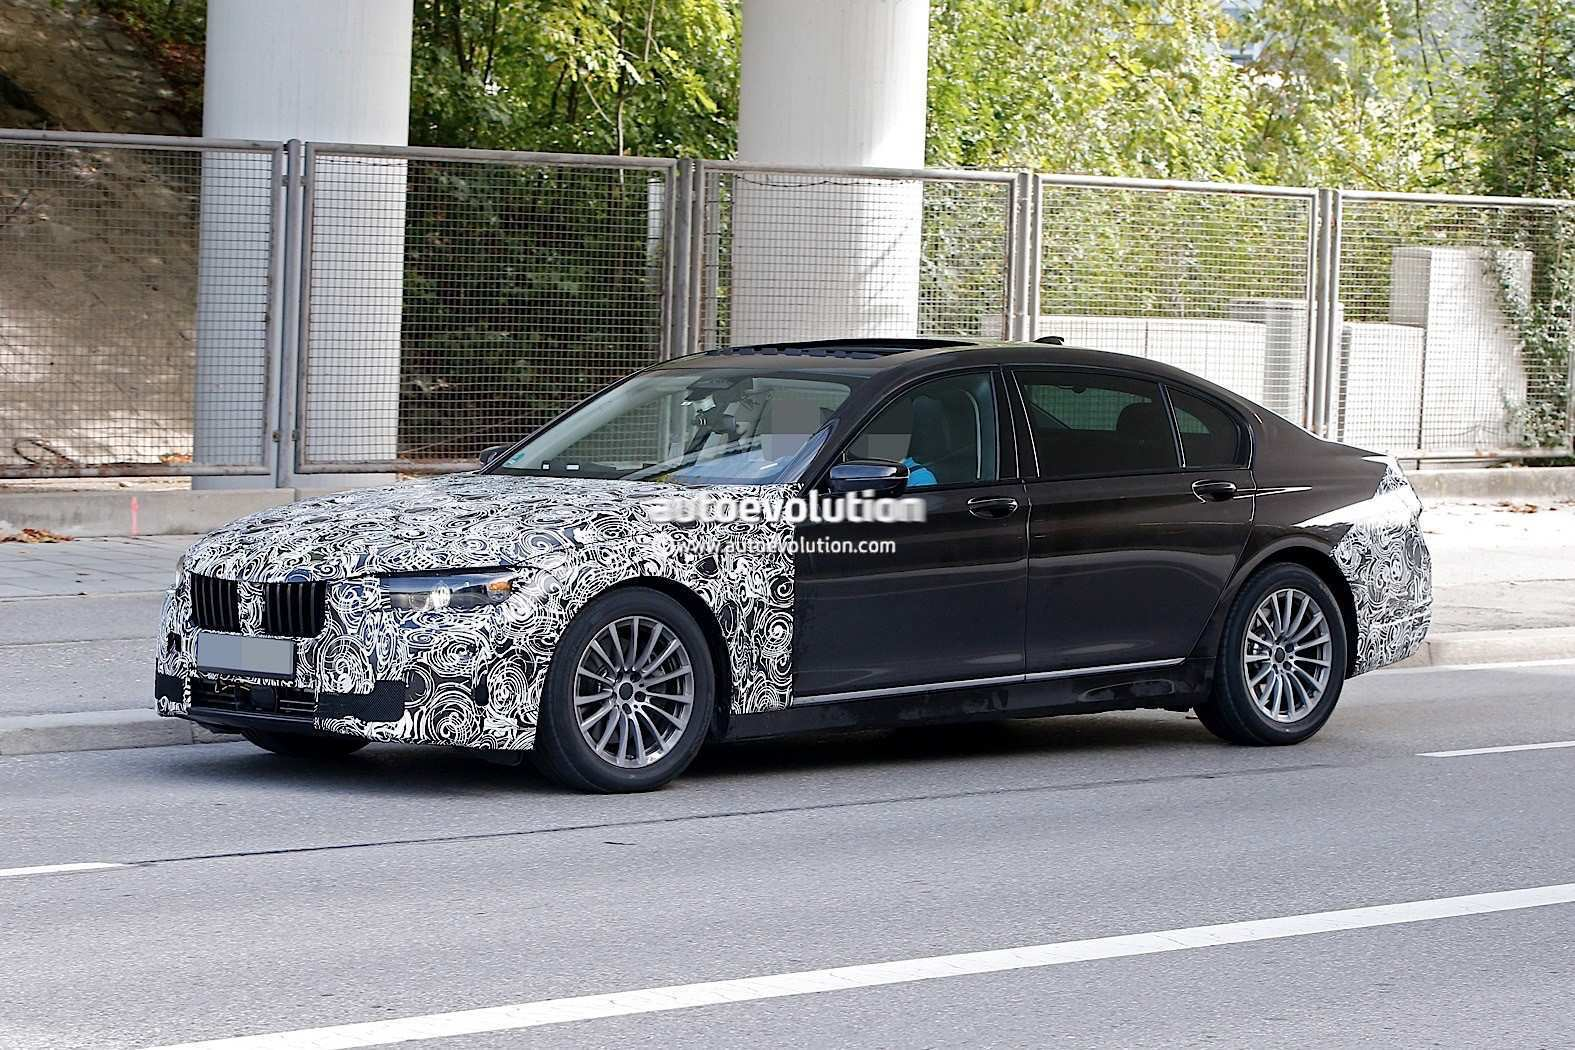 55 New 2019 Bmw 7 Series Lci Release Date